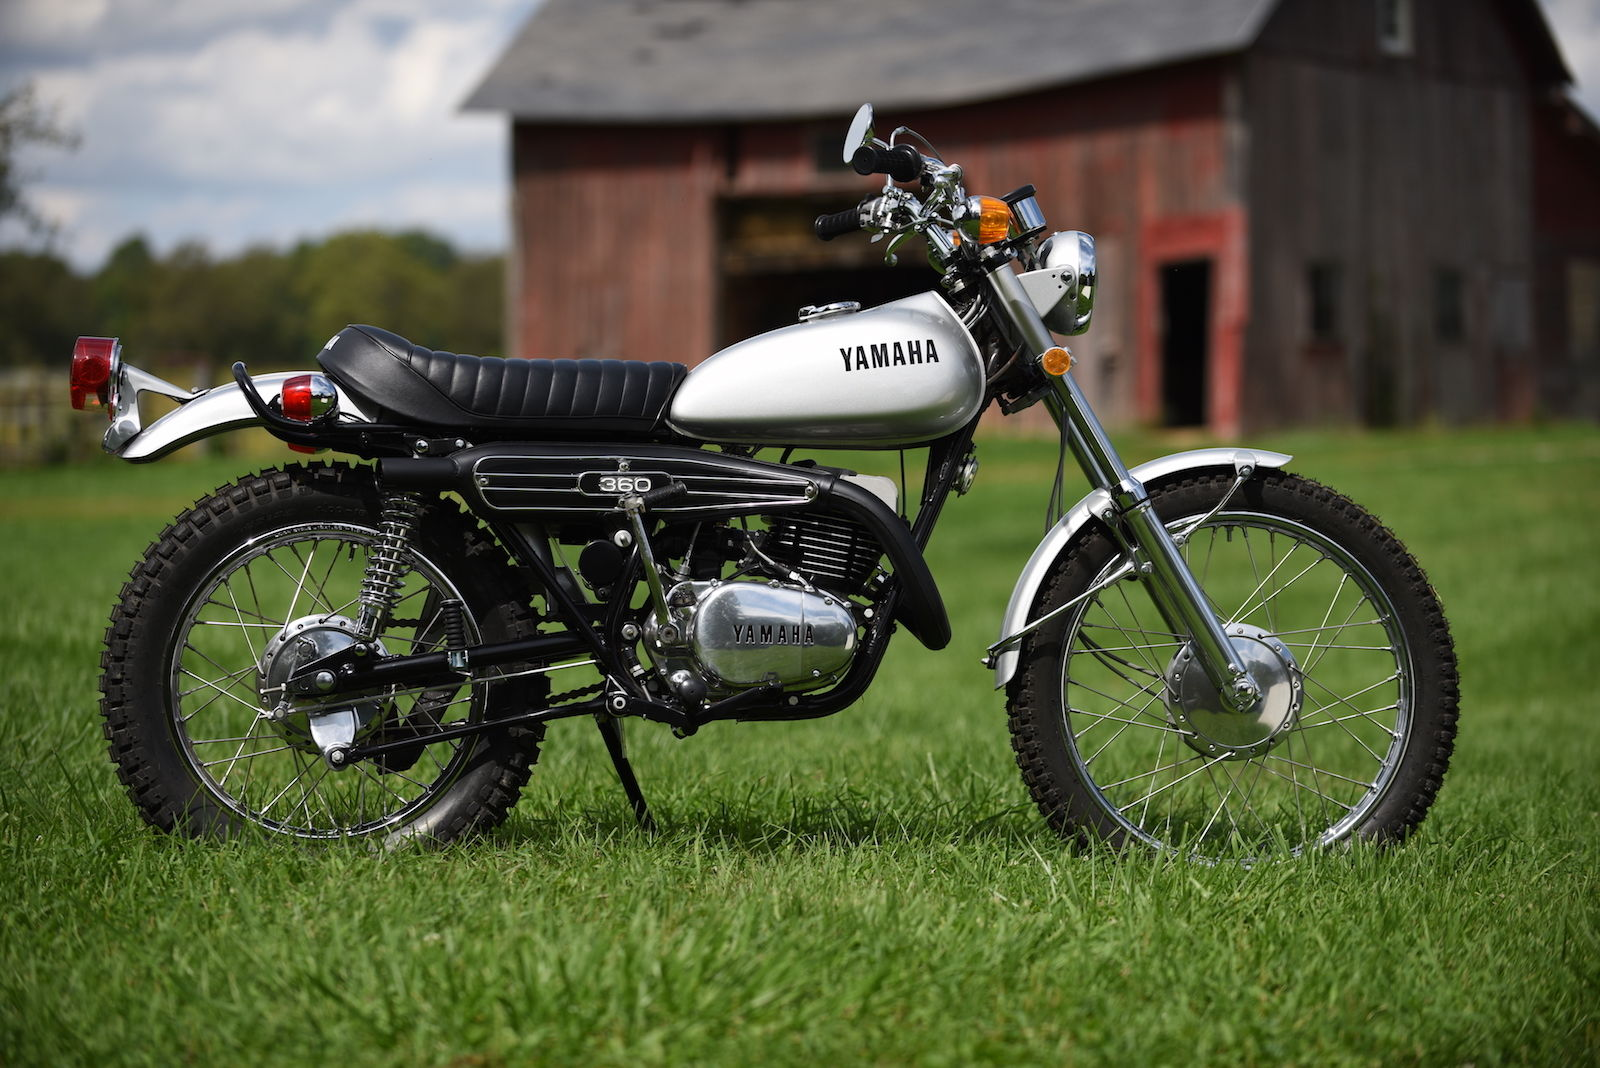 1972 yamaha rt2 360 enduro immaculately restored for sale. Black Bedroom Furniture Sets. Home Design Ideas